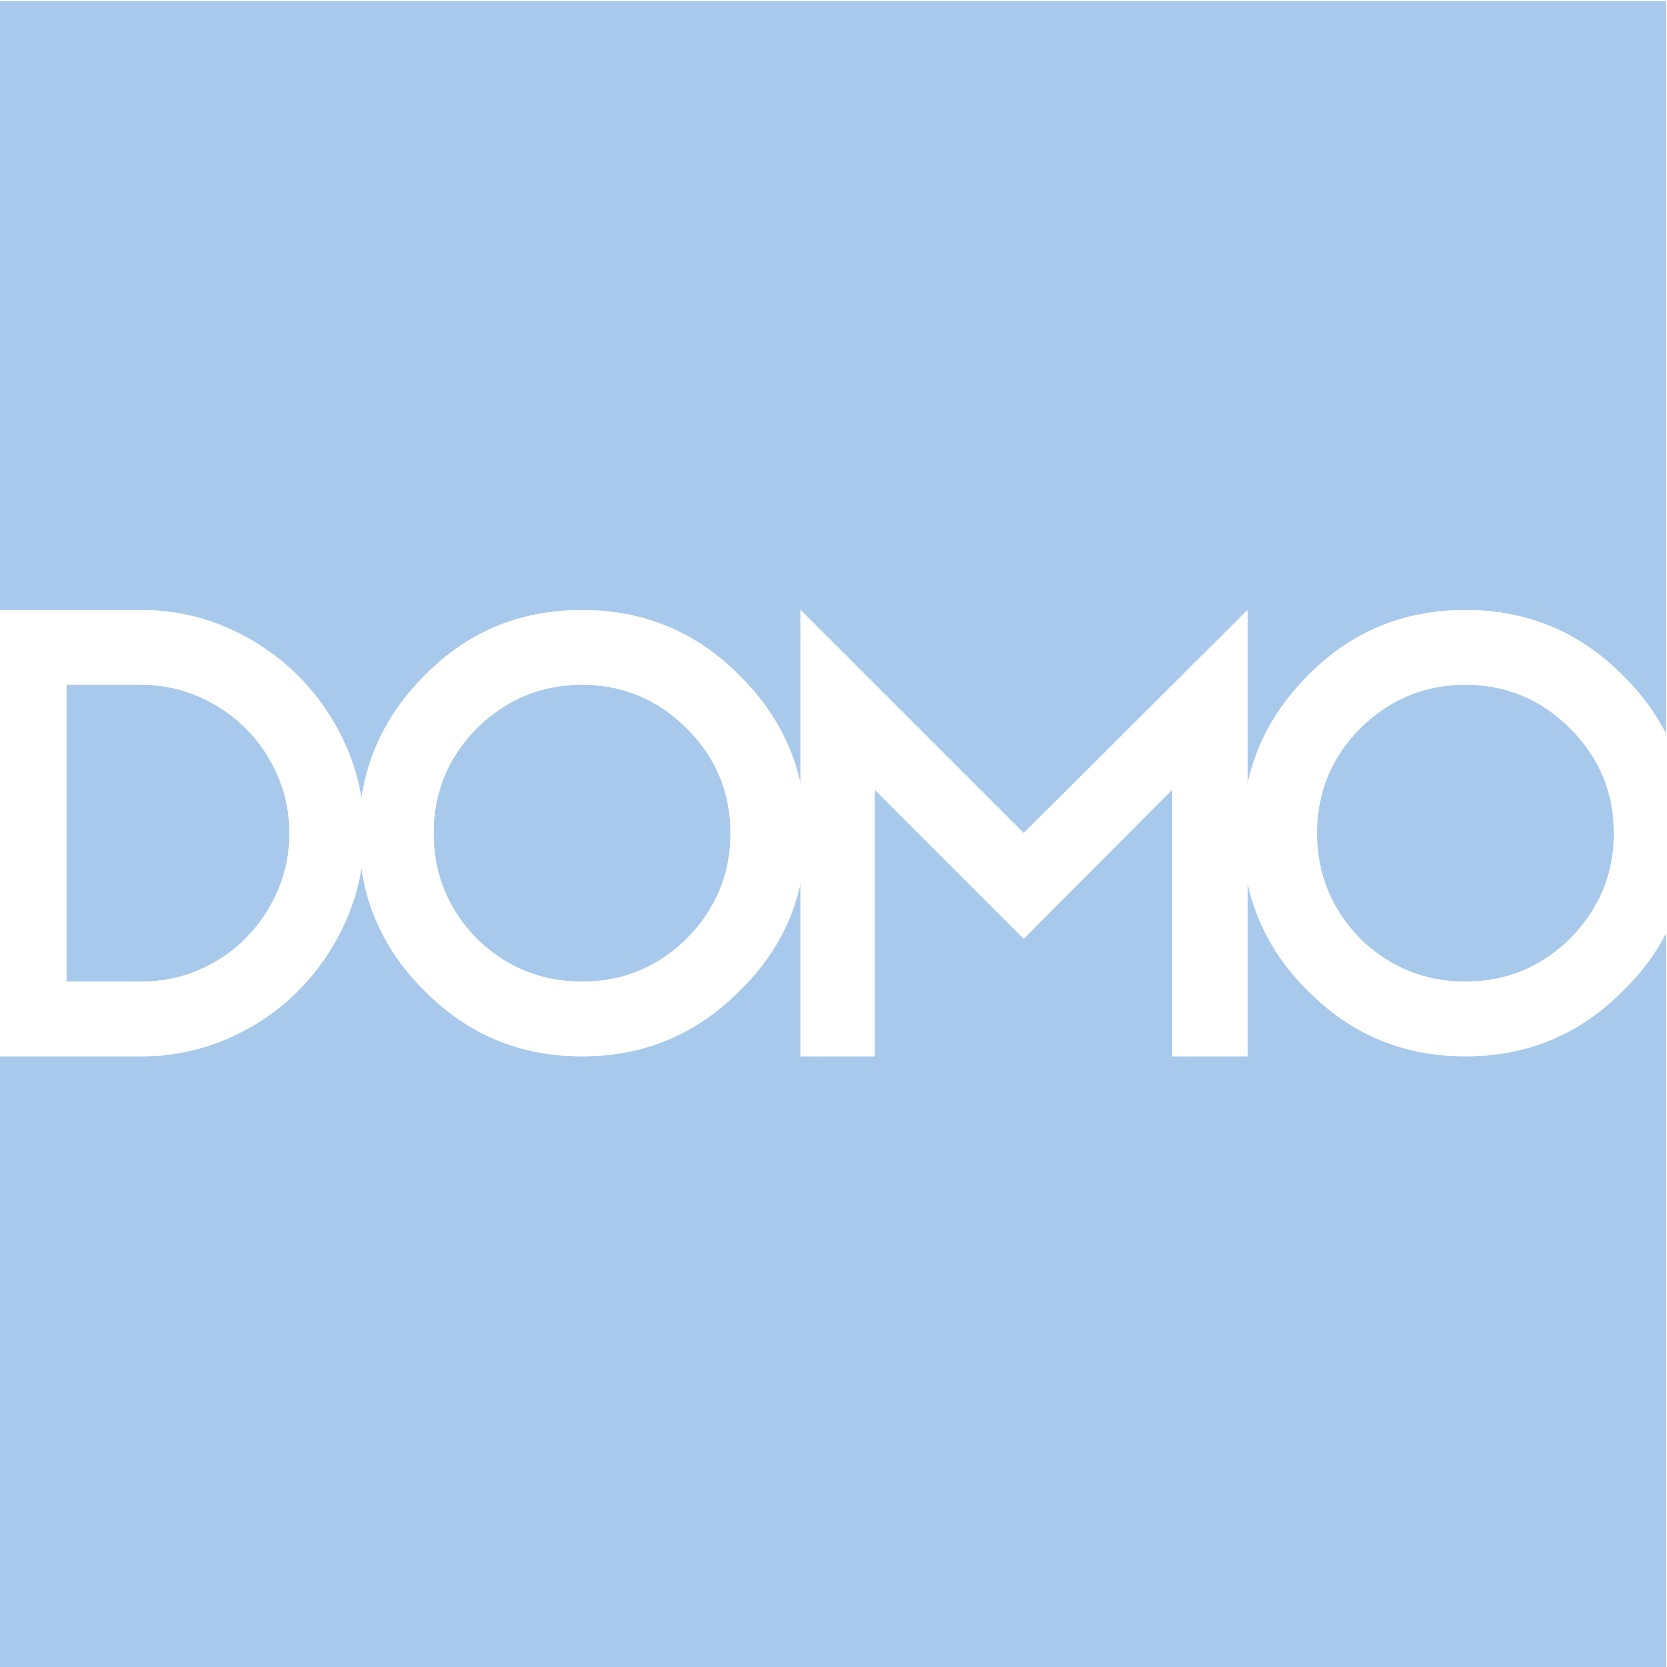 Domo Welcomes Global Digital Marketing Executives, Shane Atchison and Jason Burby, to Management Team